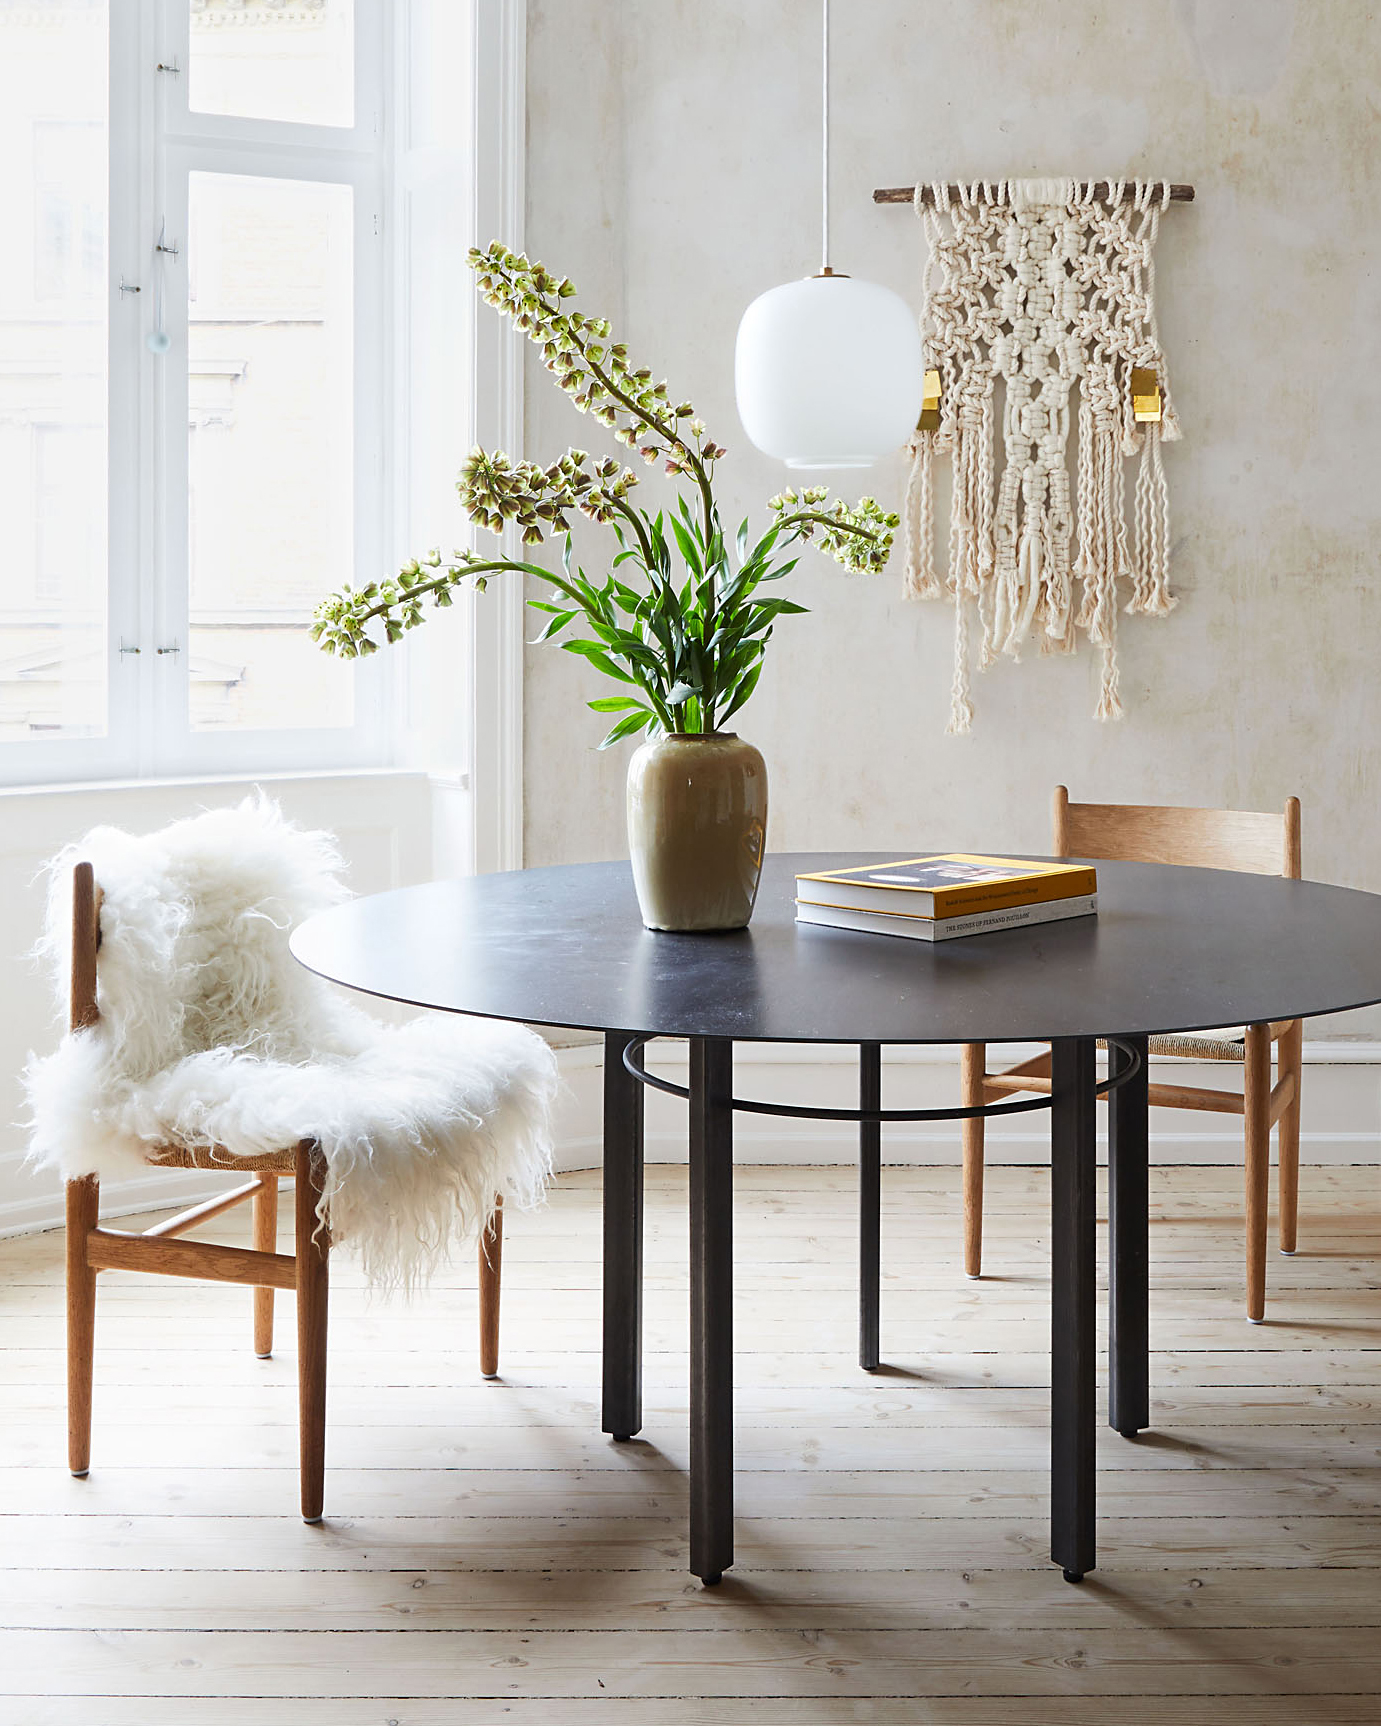 round table and chairs by window and wall hanging